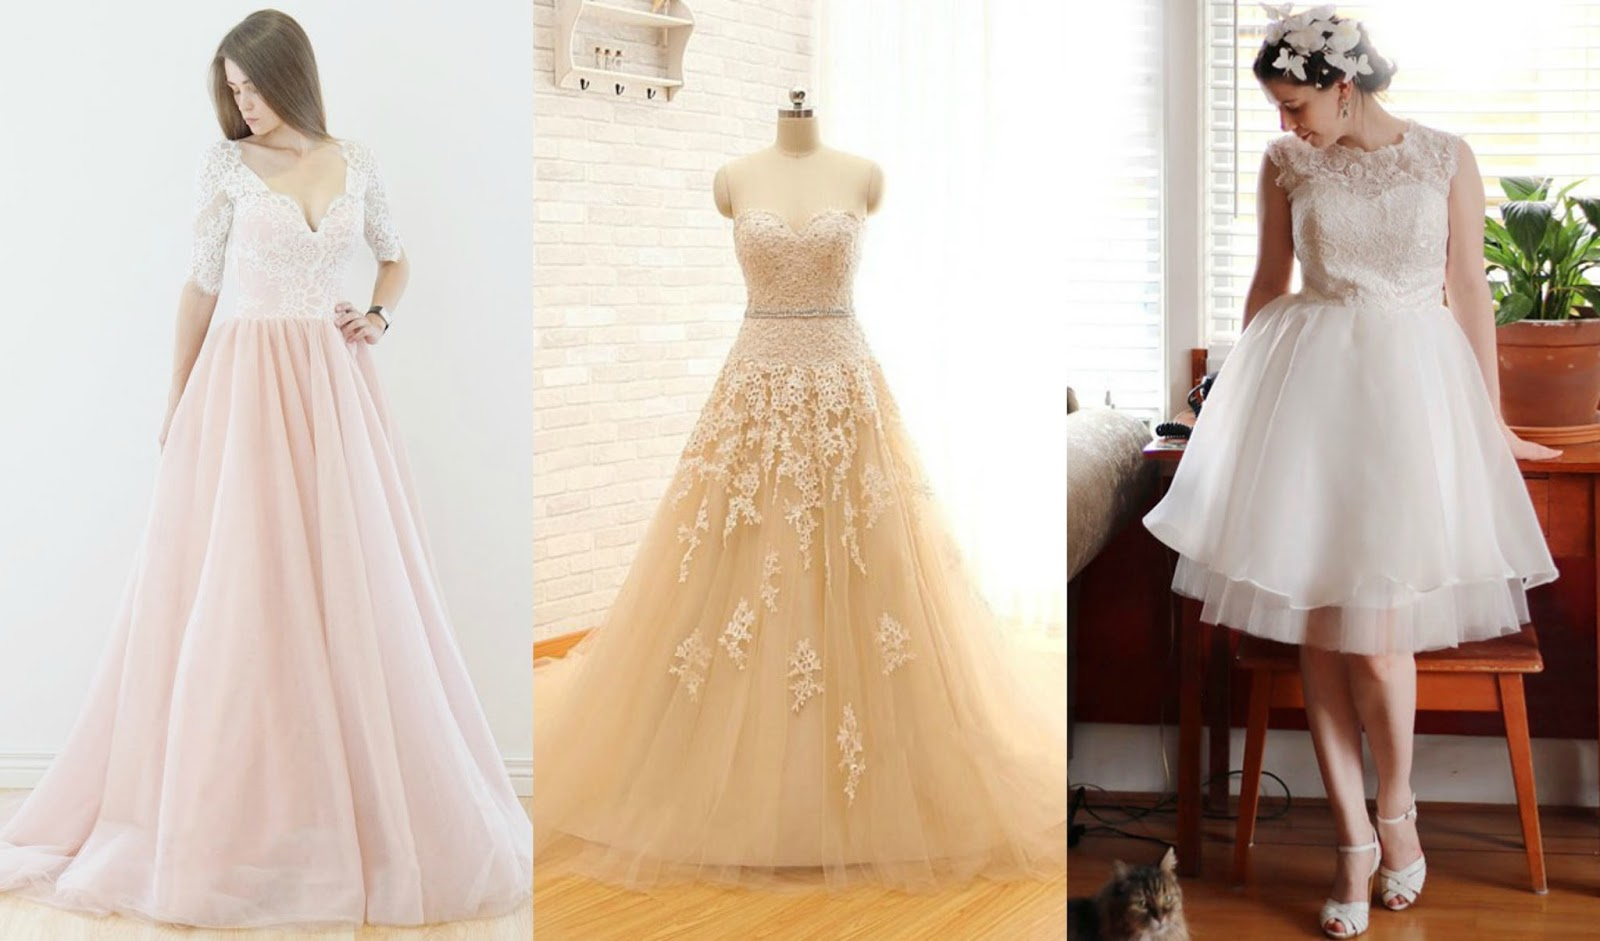 Unique Wedding Dresses Com: Unique Color Wedding Dress Inspiration